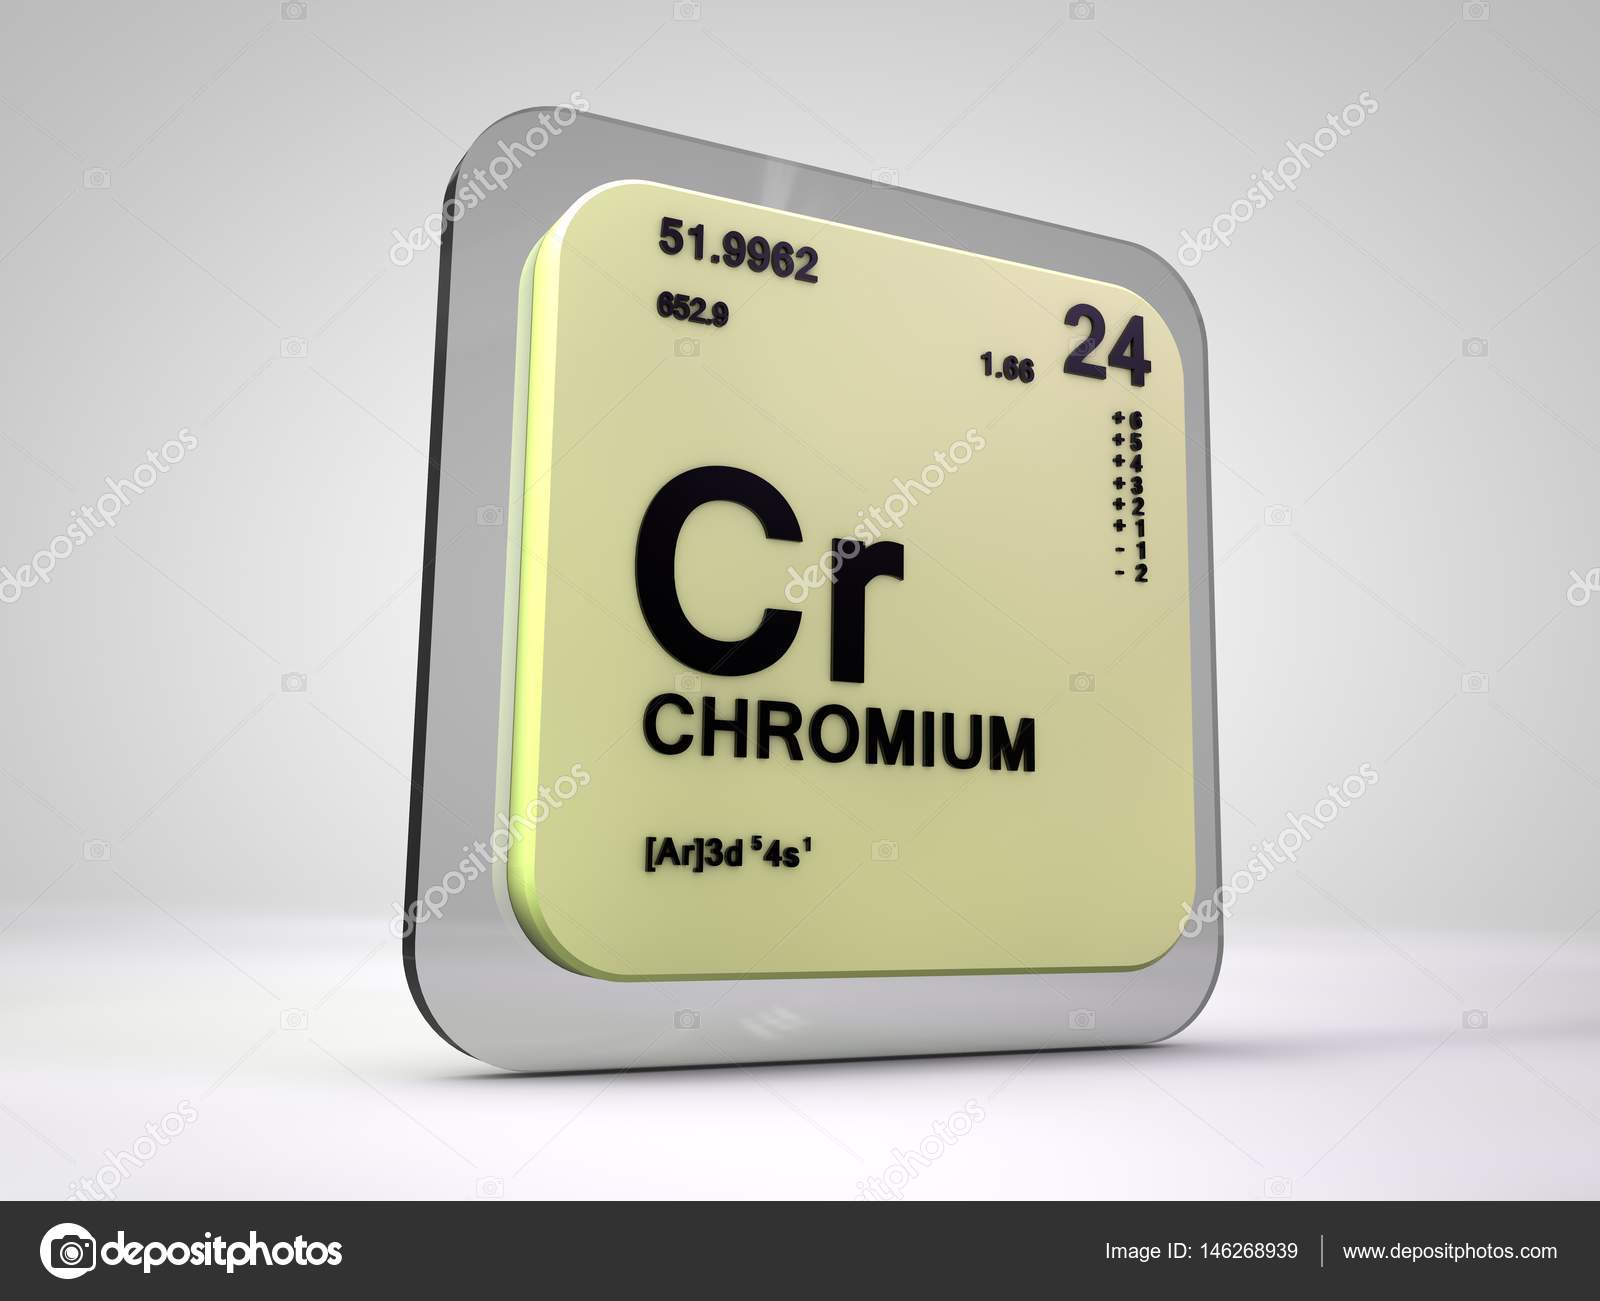 Chromium cr chemical element periodic table 3d render stock chromium cr chemical element periodic table 3d render photo by viking75 gamestrikefo Images